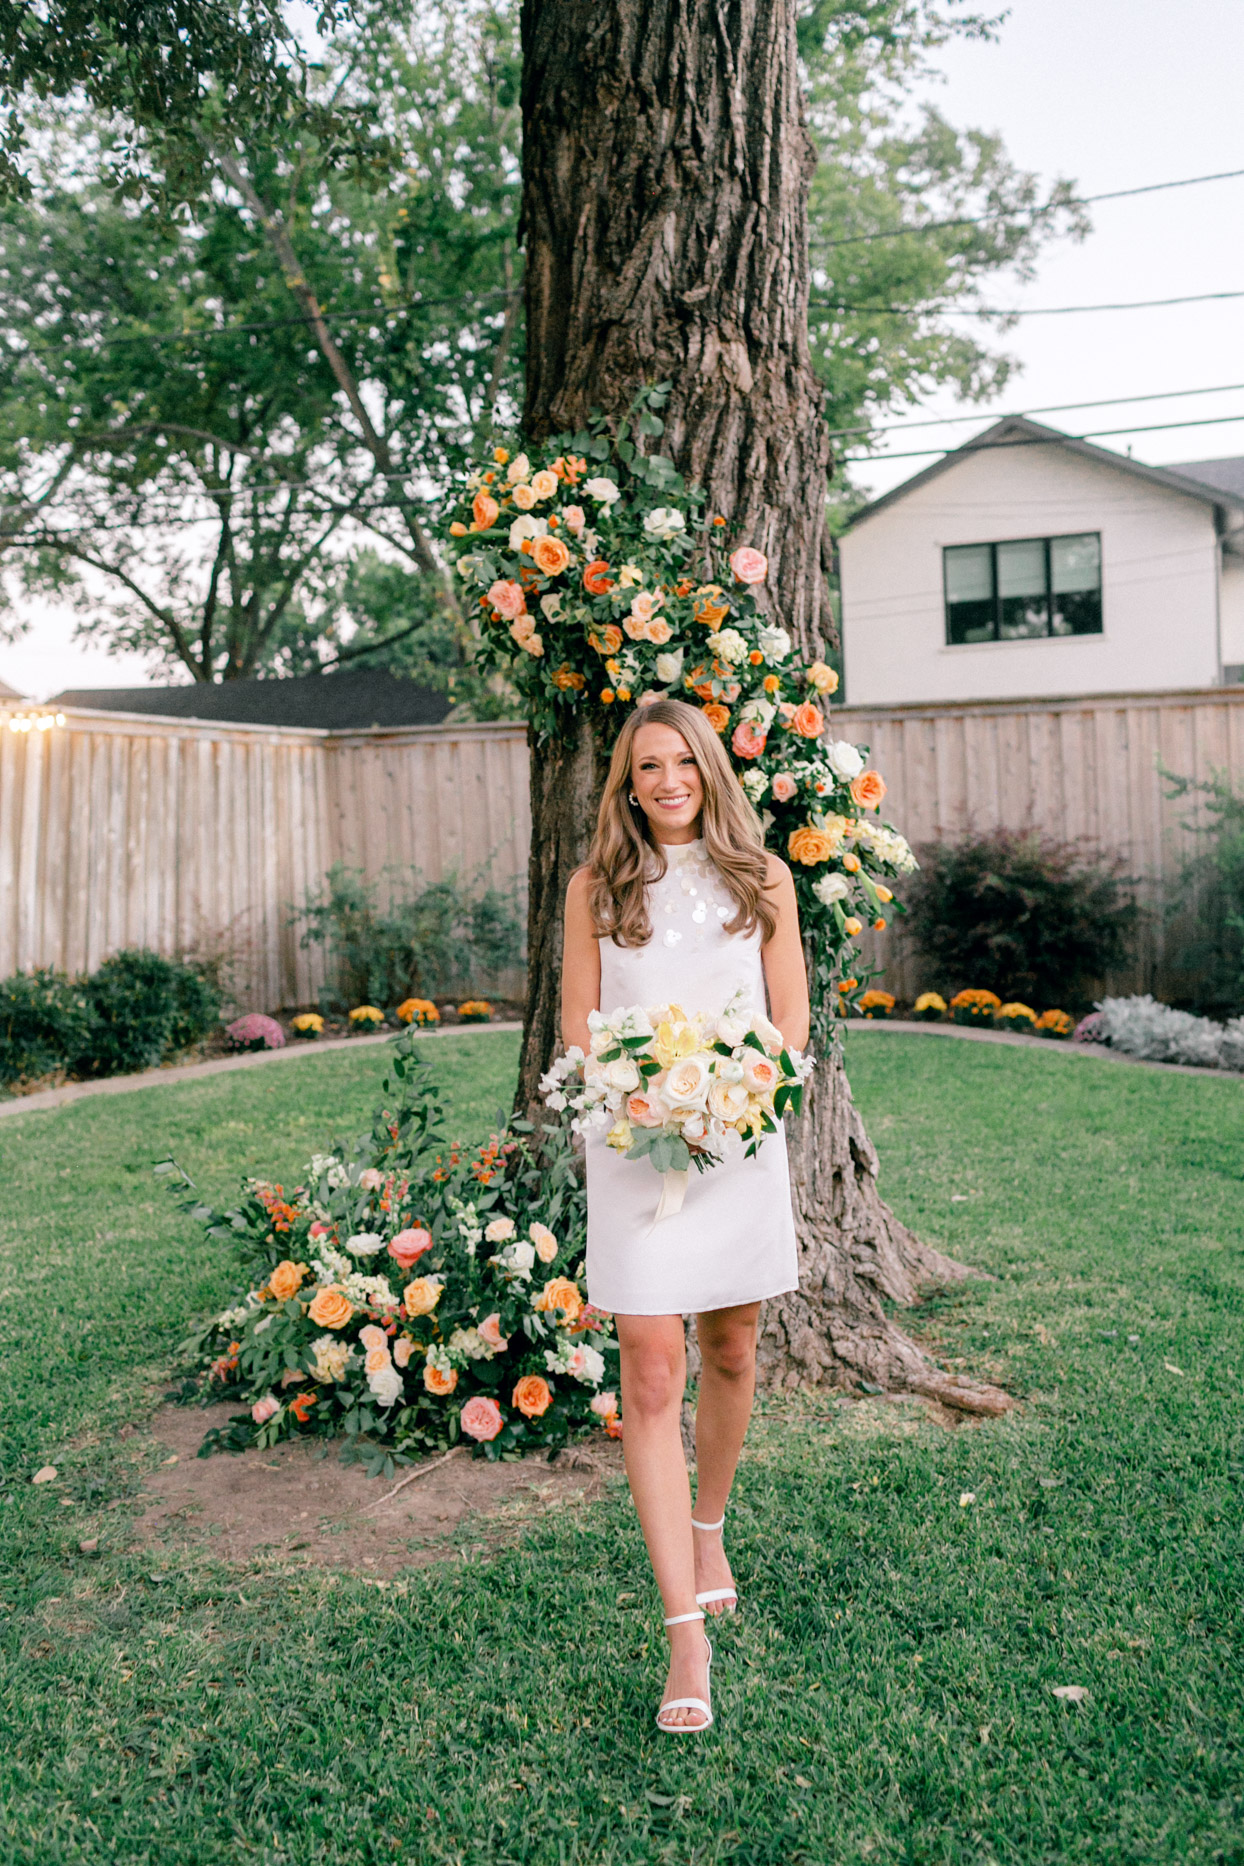 bride in short white dress holding orange, yellow and white flowers